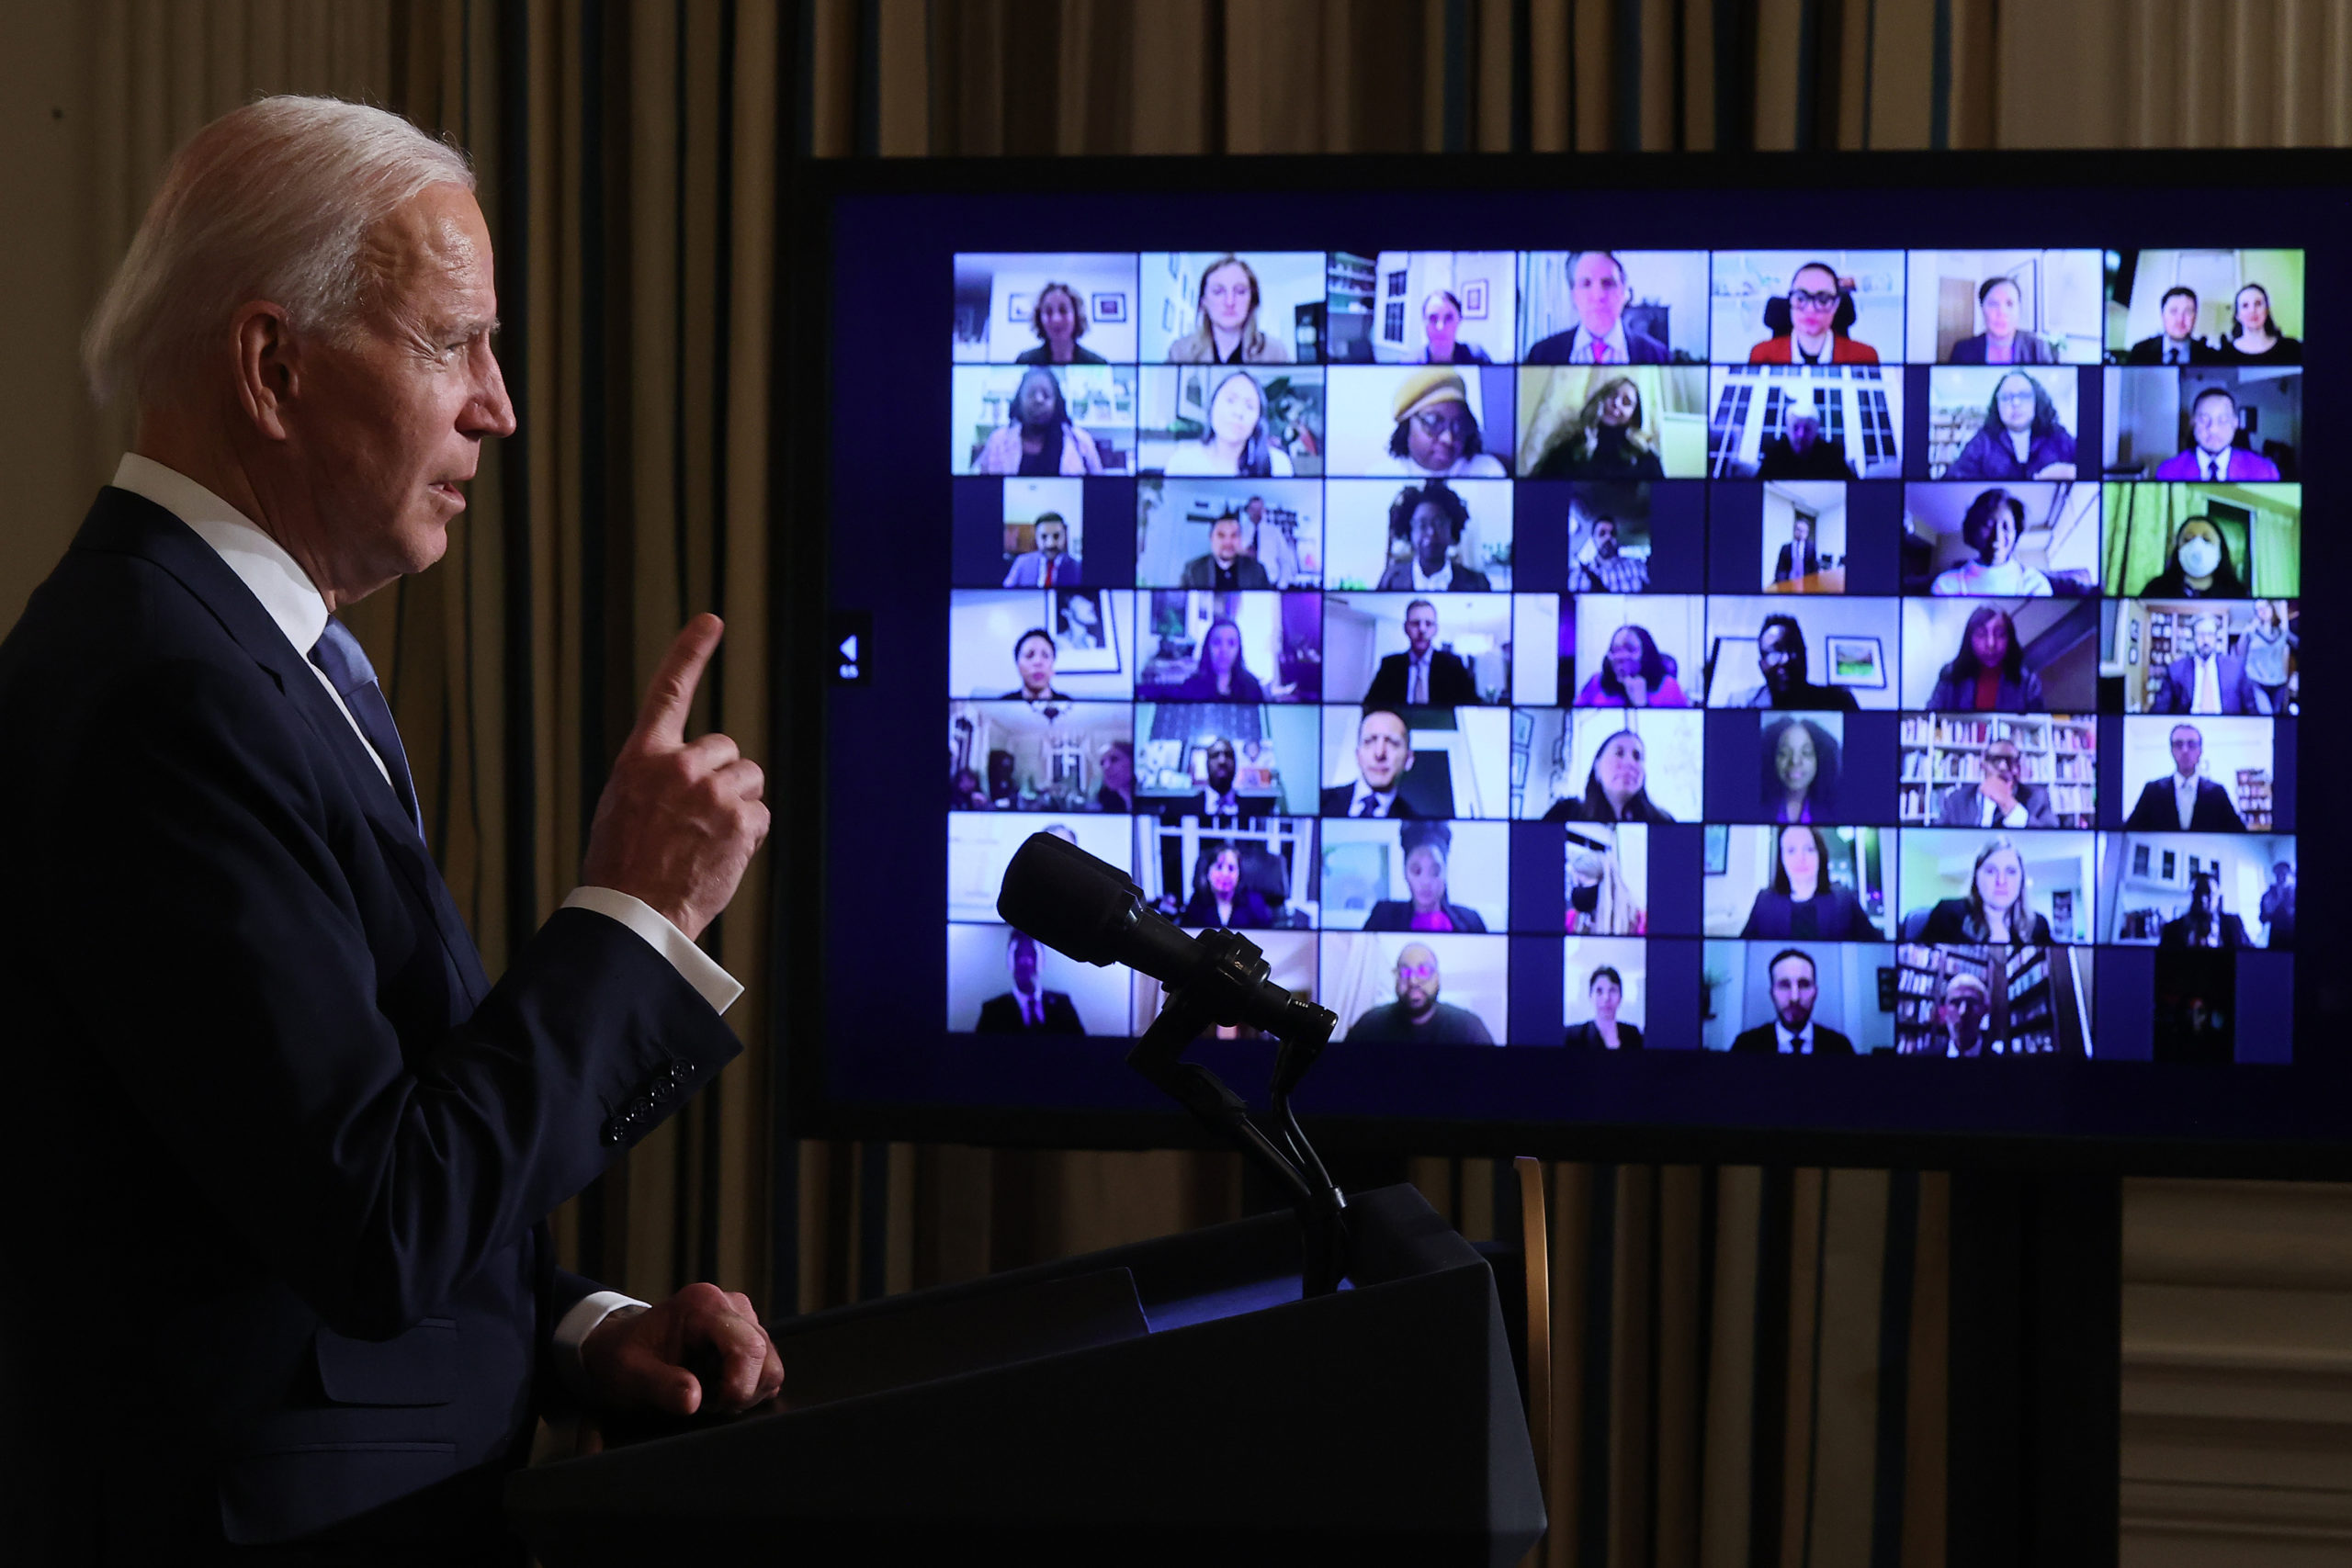 WASHINGTON, DC - JANUARY 20: U.S. President Joe Biden conducts a virtual swearing in ceremony for members of his new administration via Zoom just hours after his inauguration in the State Dining Room at the White House January 20, 2021 in Washington, DC. Biden became the 46th president of the United States earlier today during the ceremony at the U.S. Capitol. (Photo by Chip Somodevilla/Getty Images)